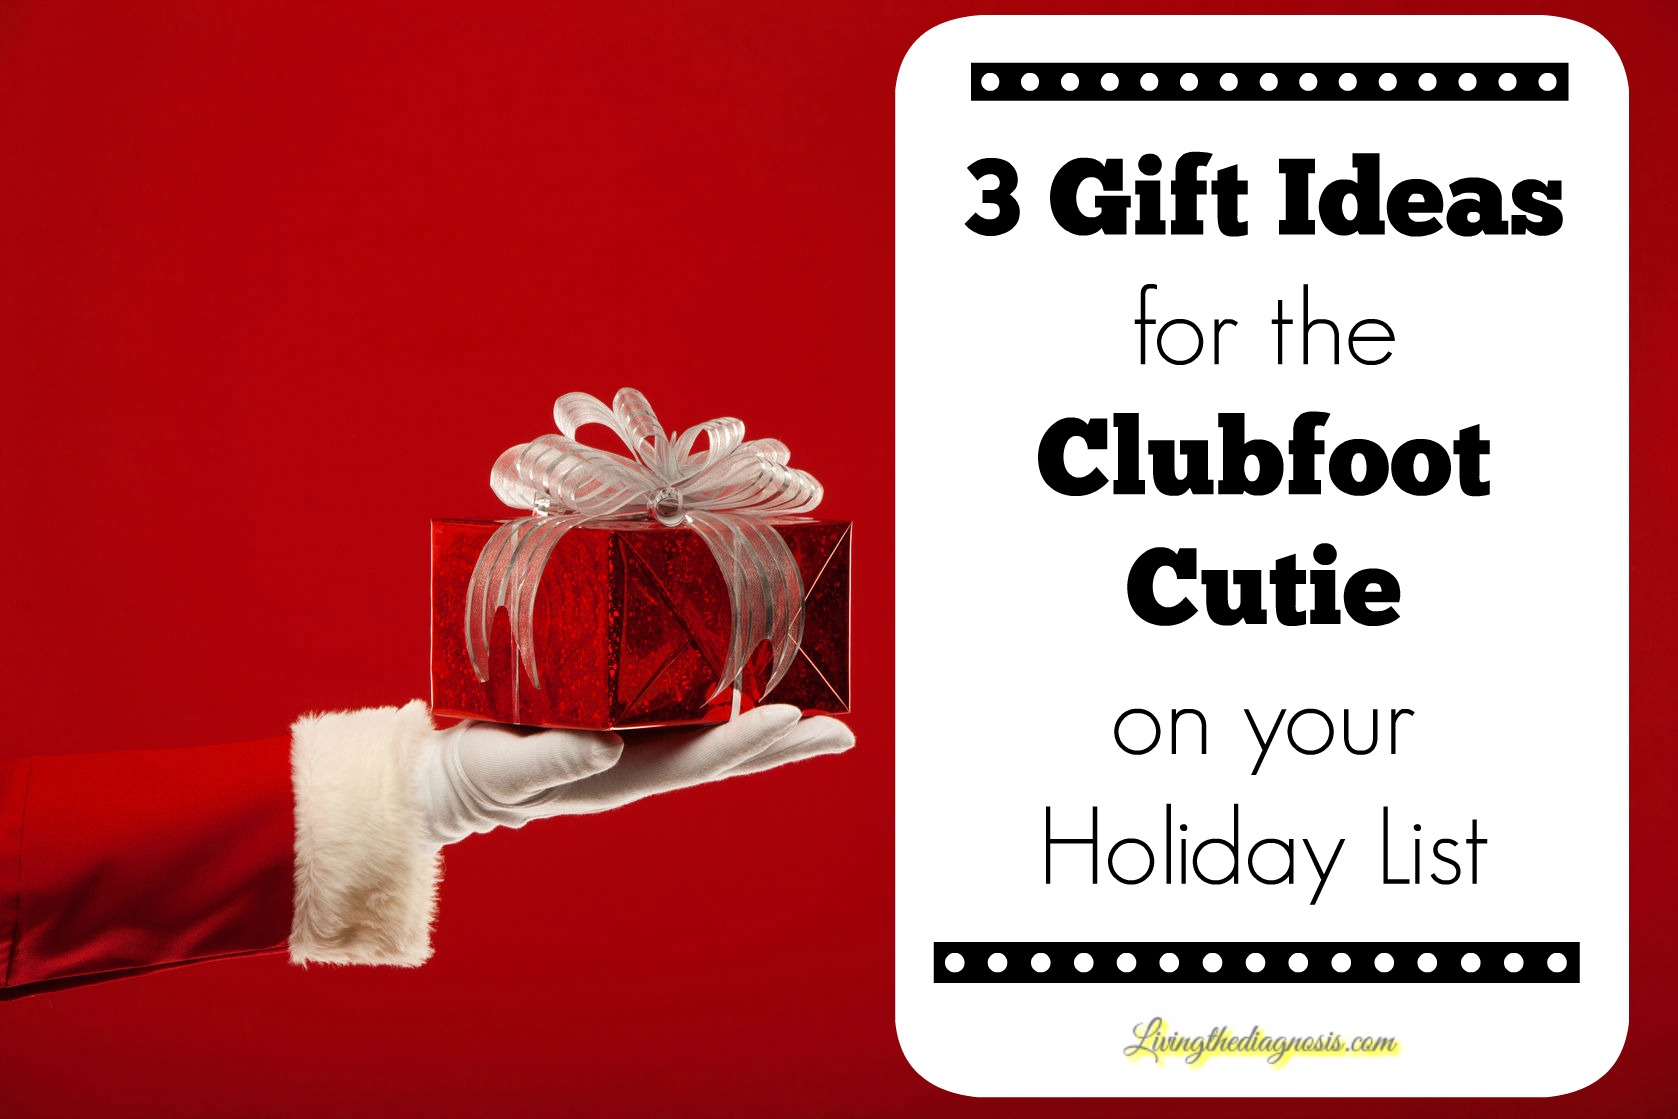 3 Gift Ideas for the Clubfoot Cutie on your Holiday List